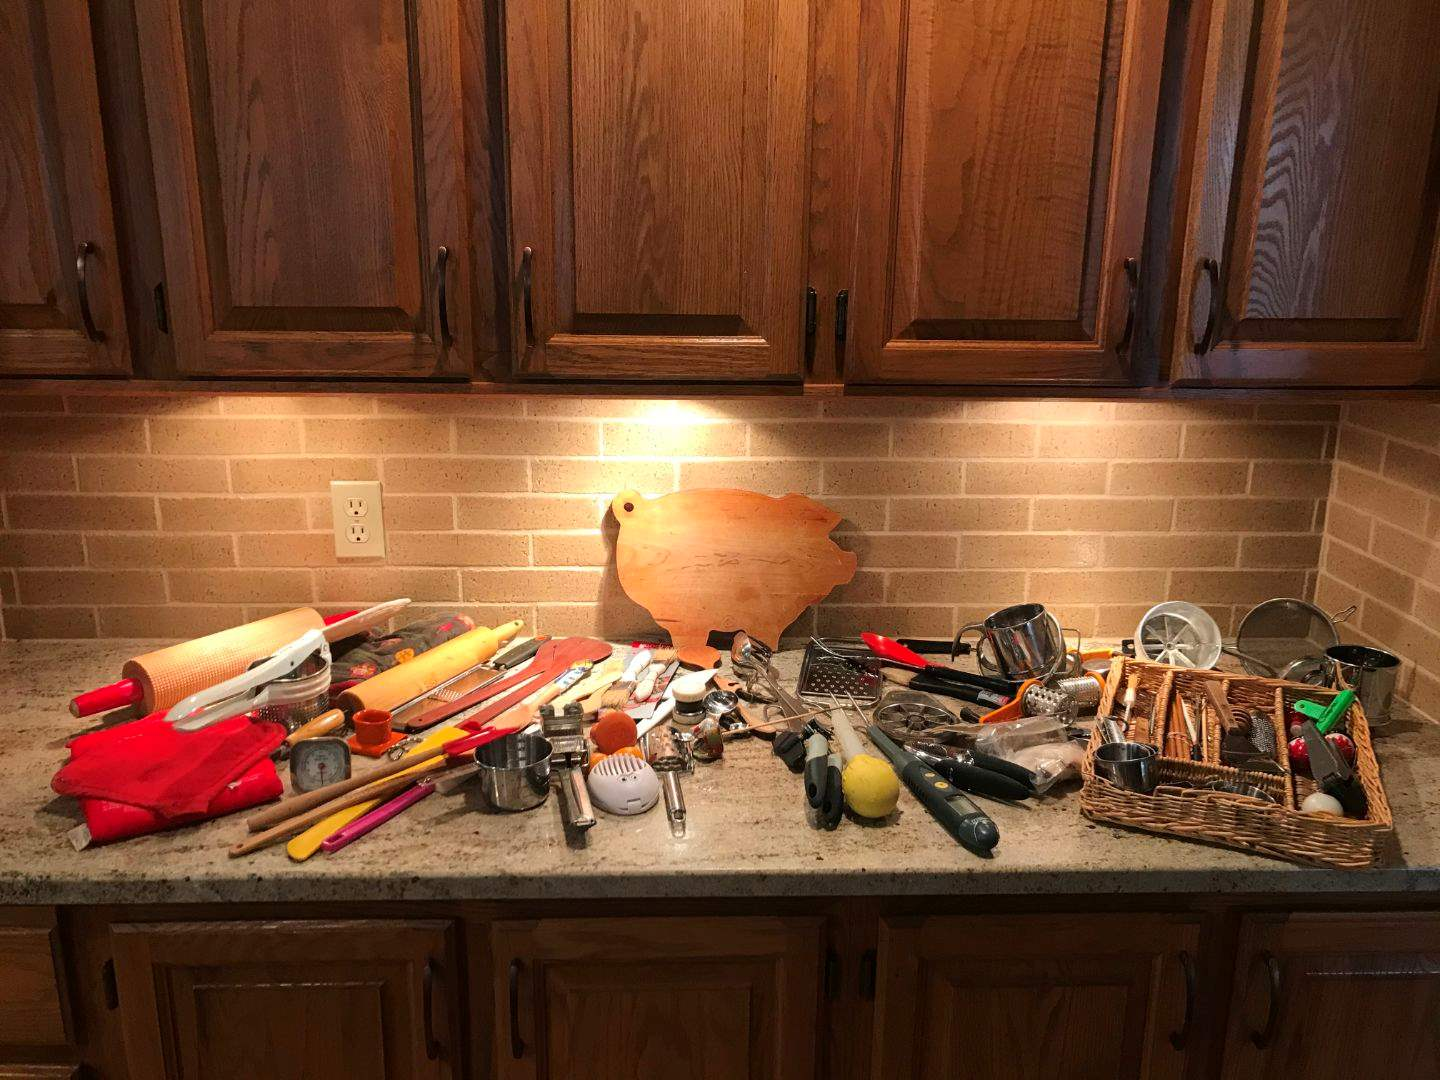 Lot # 62 - Kitchen Utensils; Wooden Spoons, Rolling Pins, Sifters, Oven Mitts, Measuring Cups & More.. (main image)